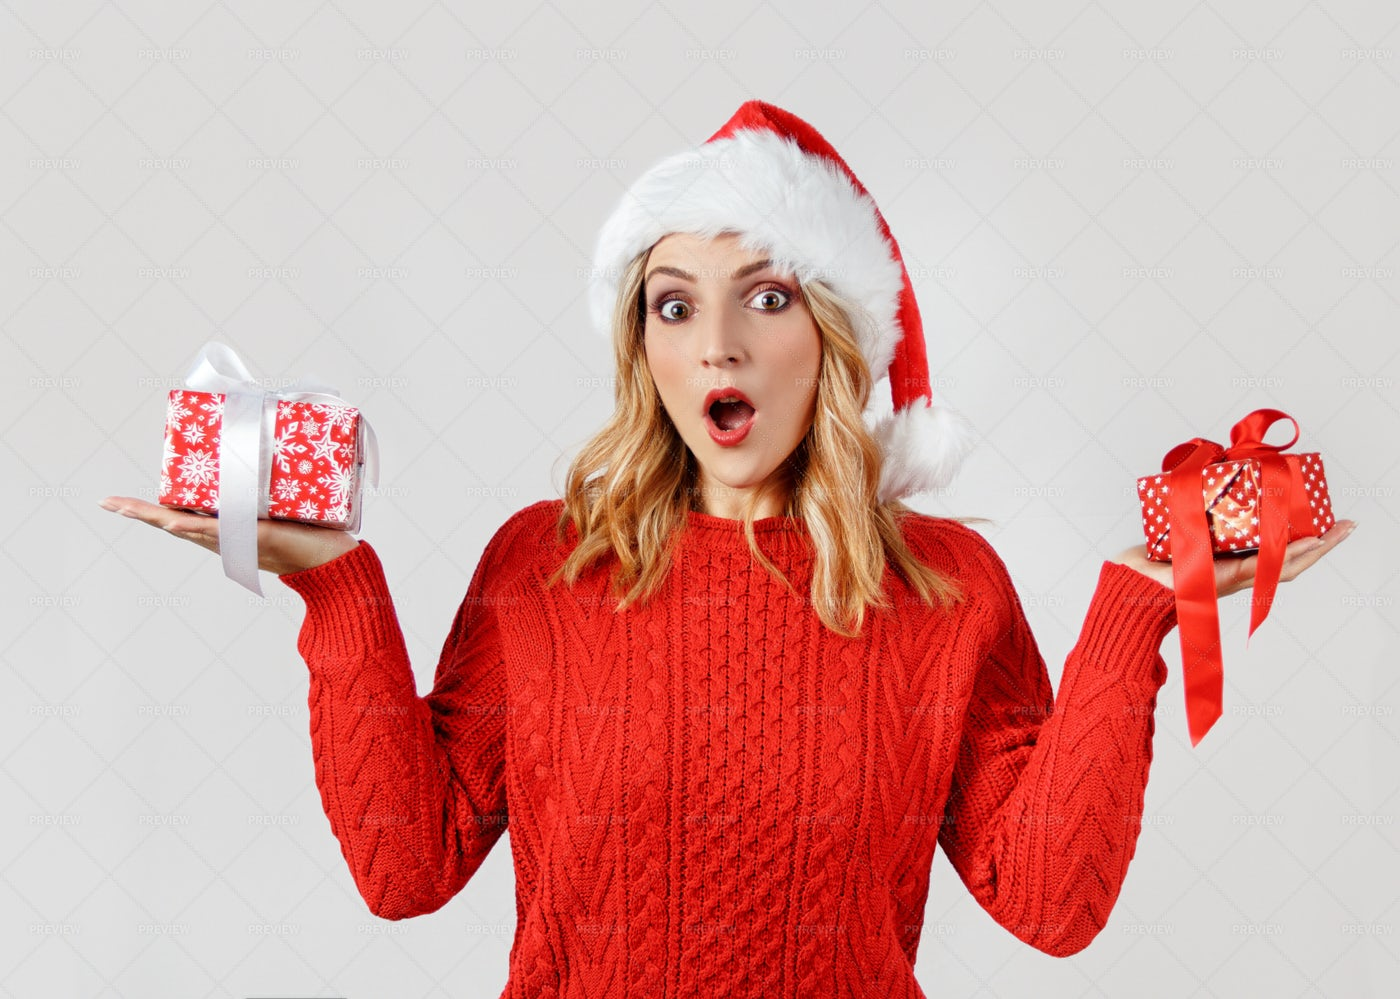 Surprised Woman With Gifts: Stock Photos